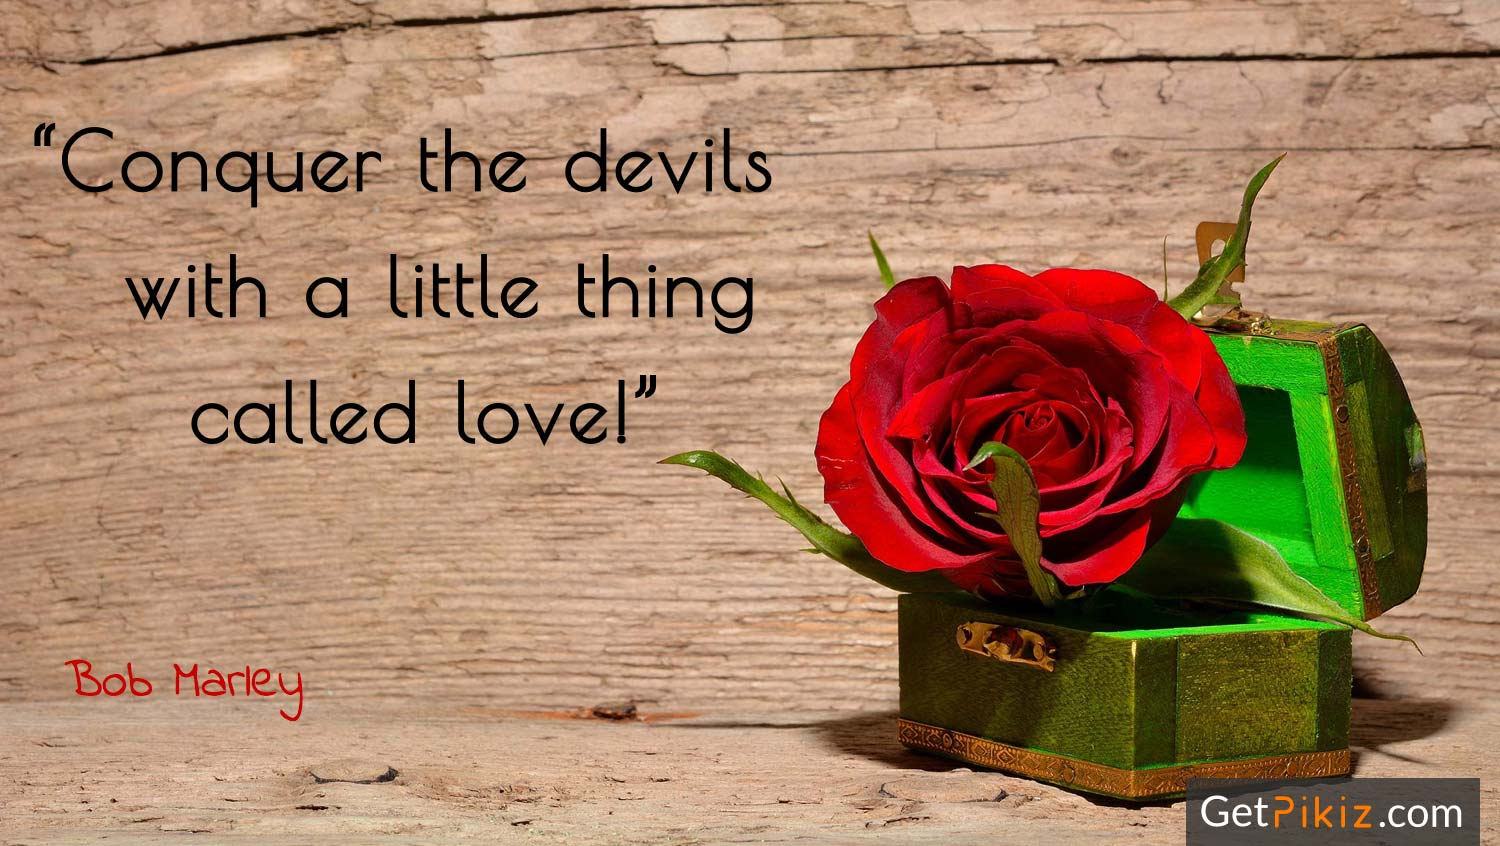 """Conquer the devils with a little thing called love!"" – Bob Marley"